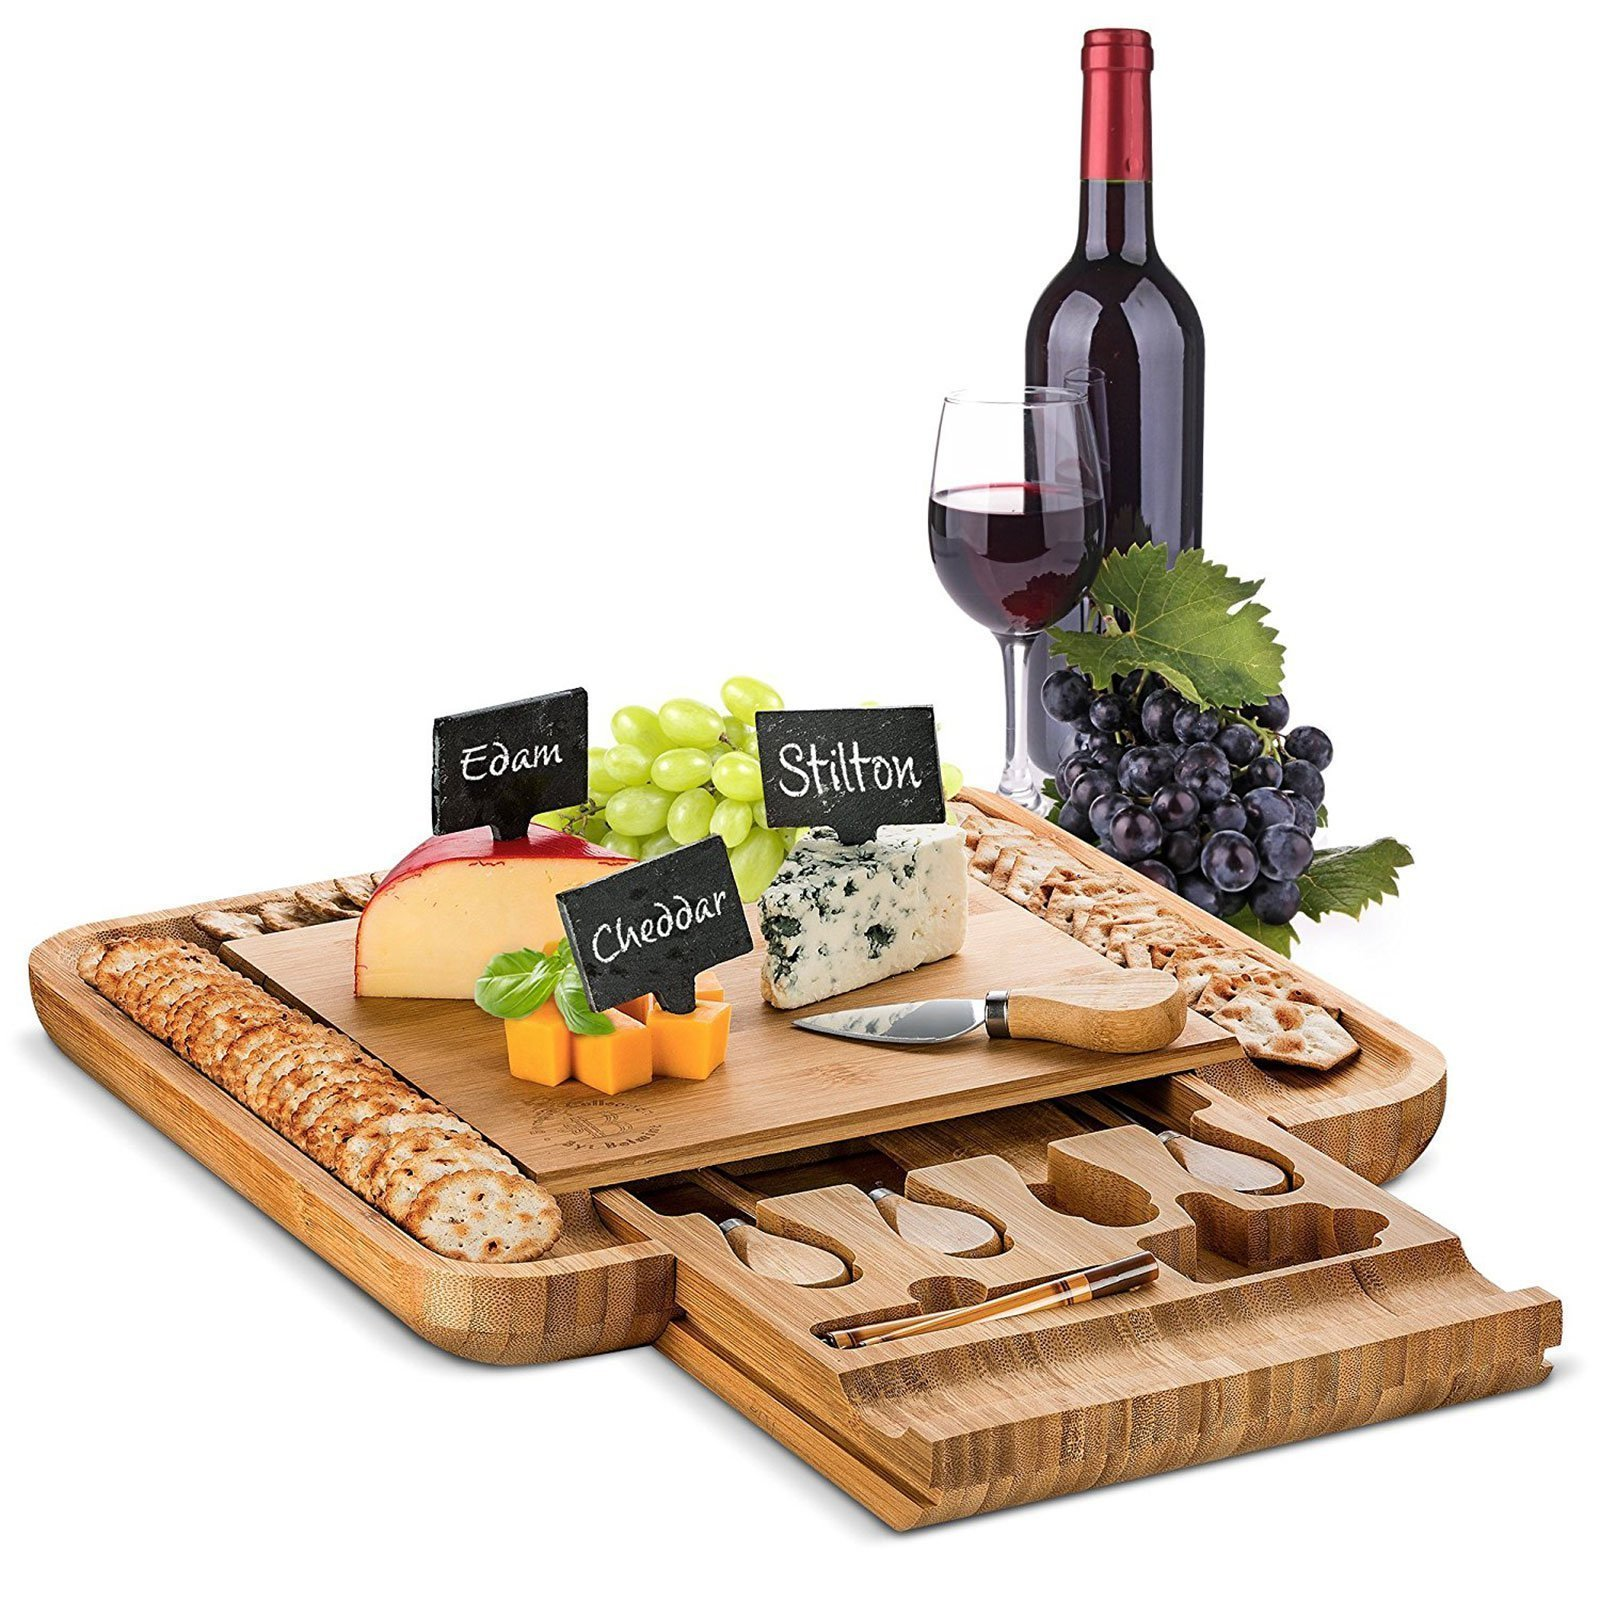 Bamboo Cheese Board and Knife Set Full Review